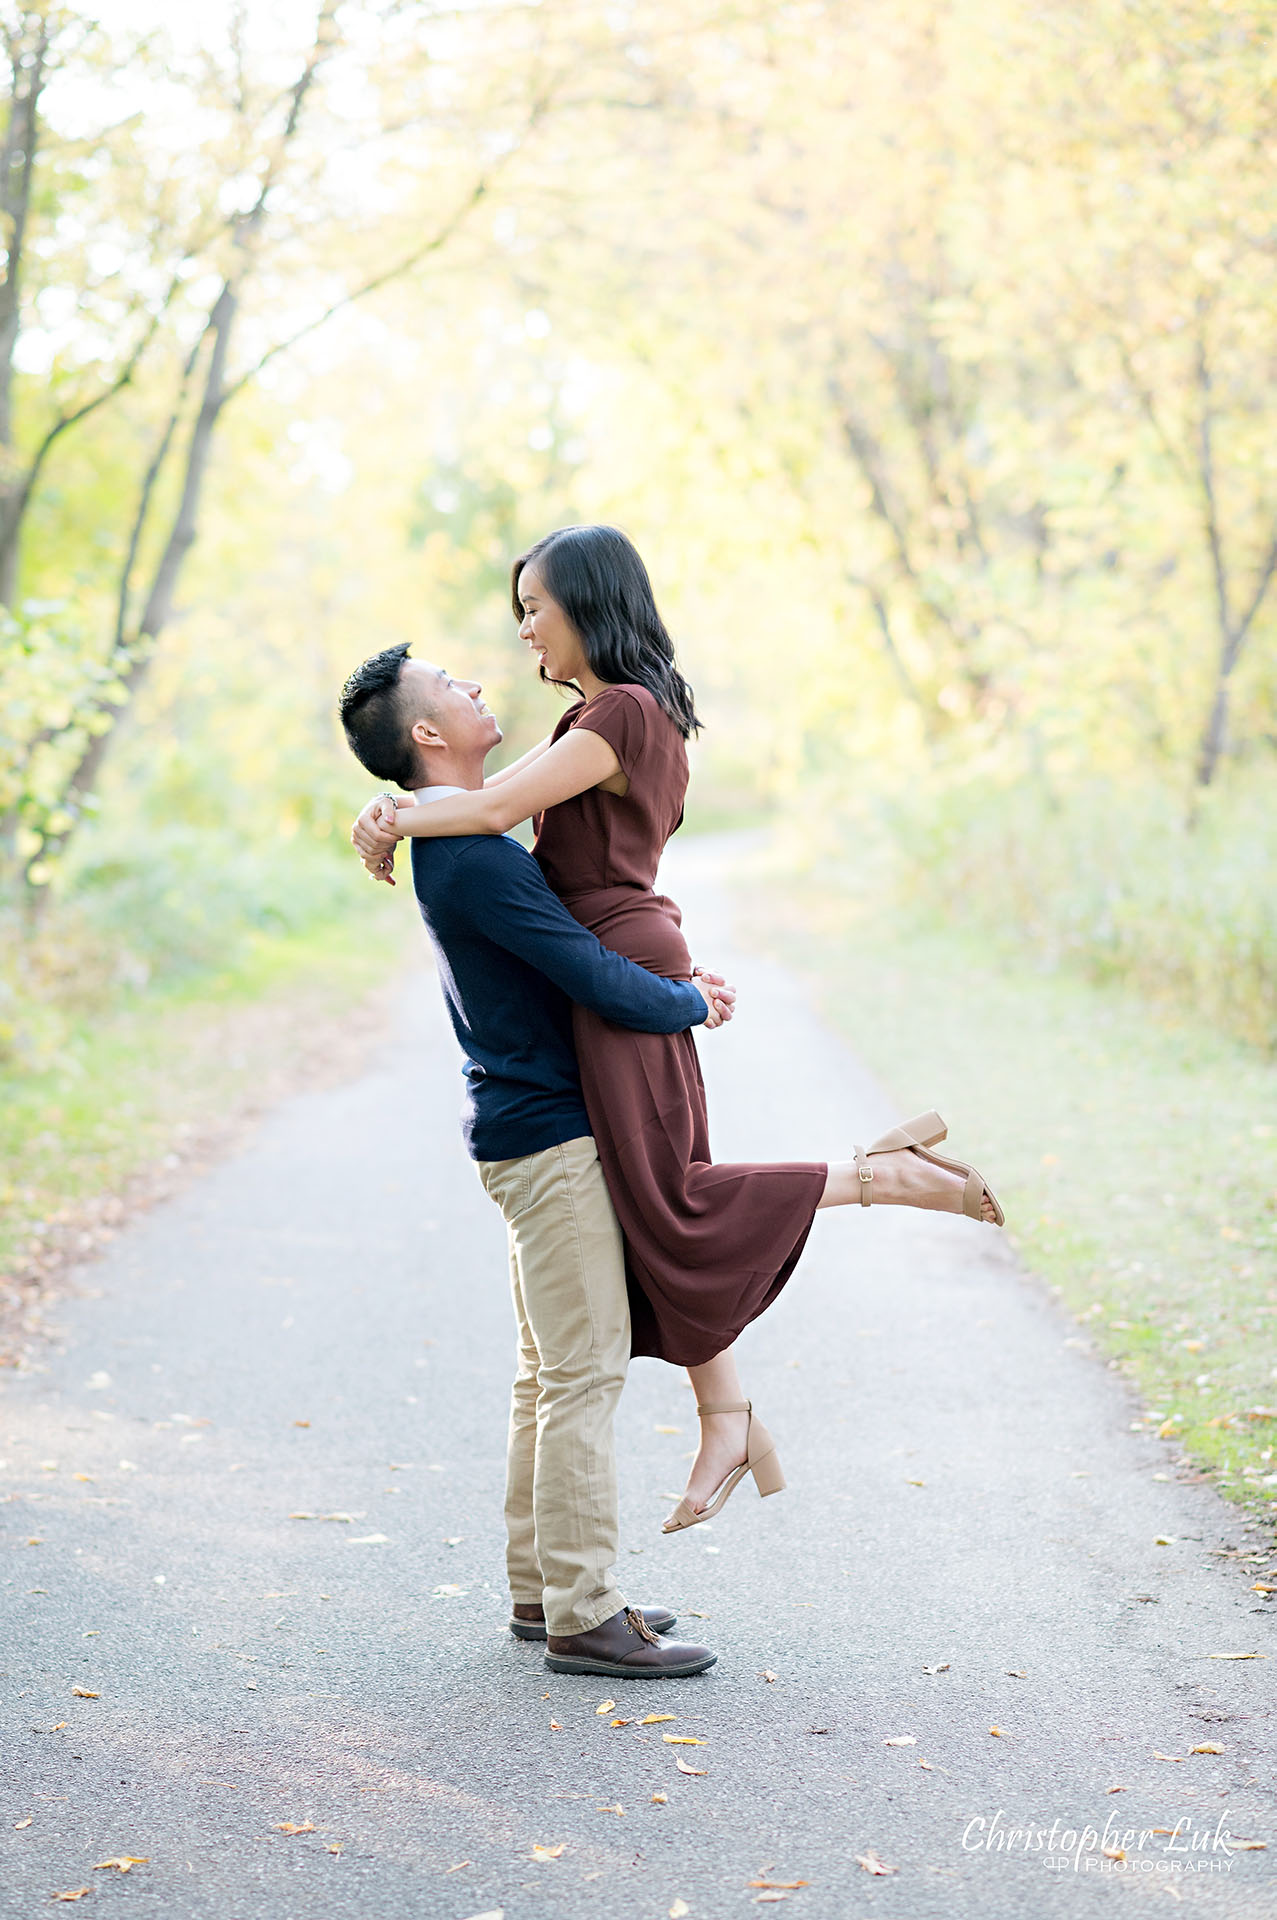 Christopher Luk Toronto Wedding Engagement Session Photographer Autumn Fall Leaves Natural Candid Photojournalistic Bride Groom Holding Hands Walking Together Pathway Hiking Trail Jump Hug Lift Carry